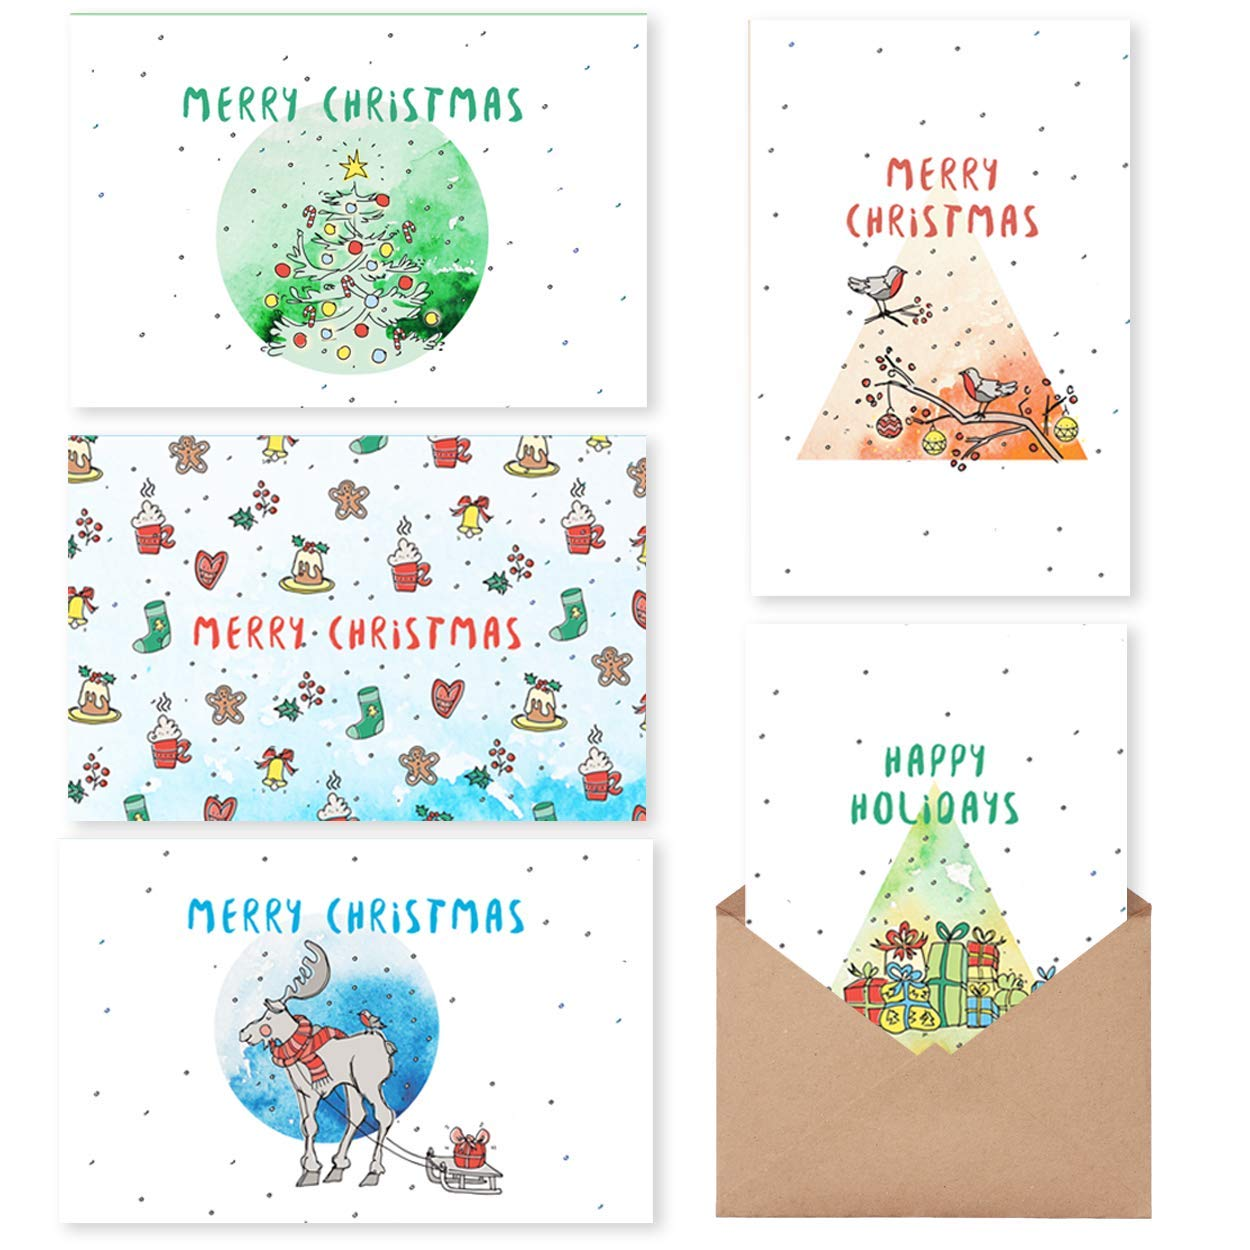 Christmas Cards Messages.Christmas Cards Boxed Holiday Cards With Message Inside 30 Adorable Xmas Cards With Gummed Kraft Envelopes 6 Unique Designs